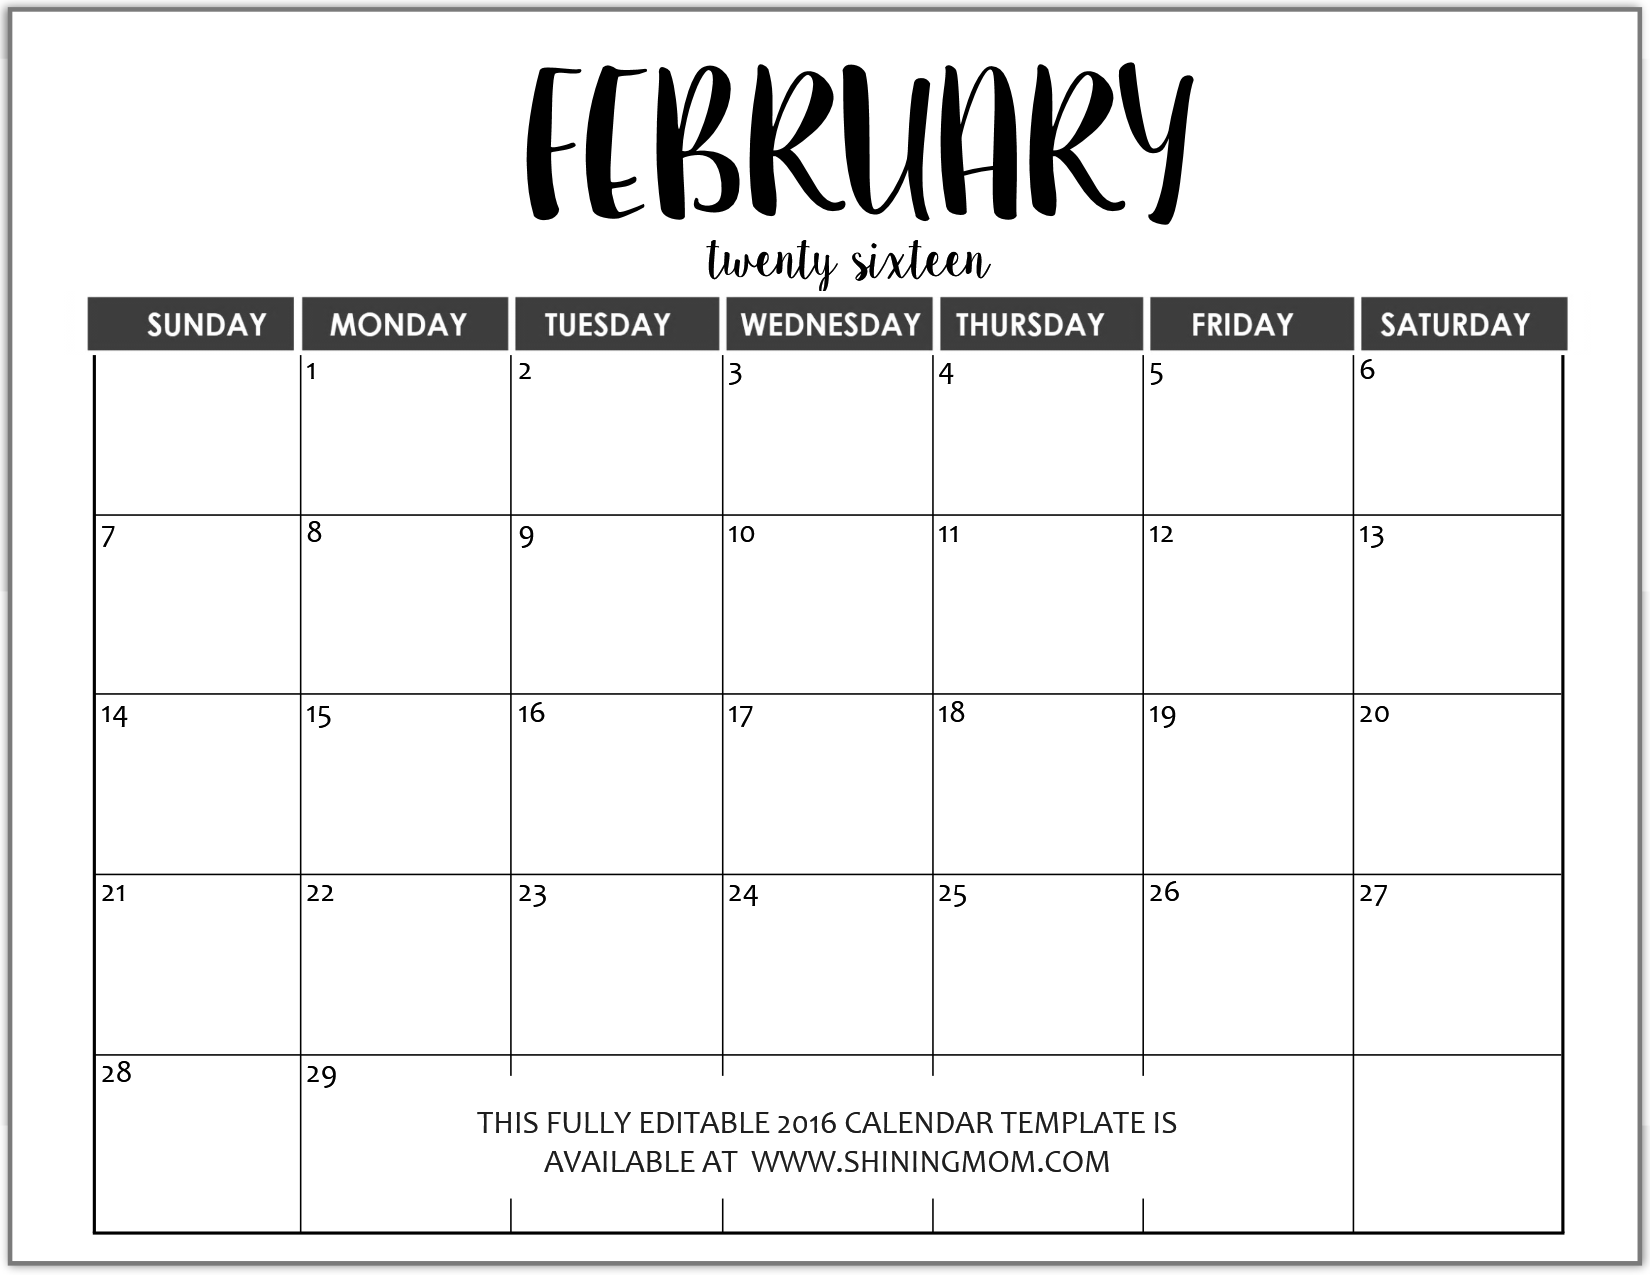 Monthly Content Calendar Template : Monthly calendar templates free editable